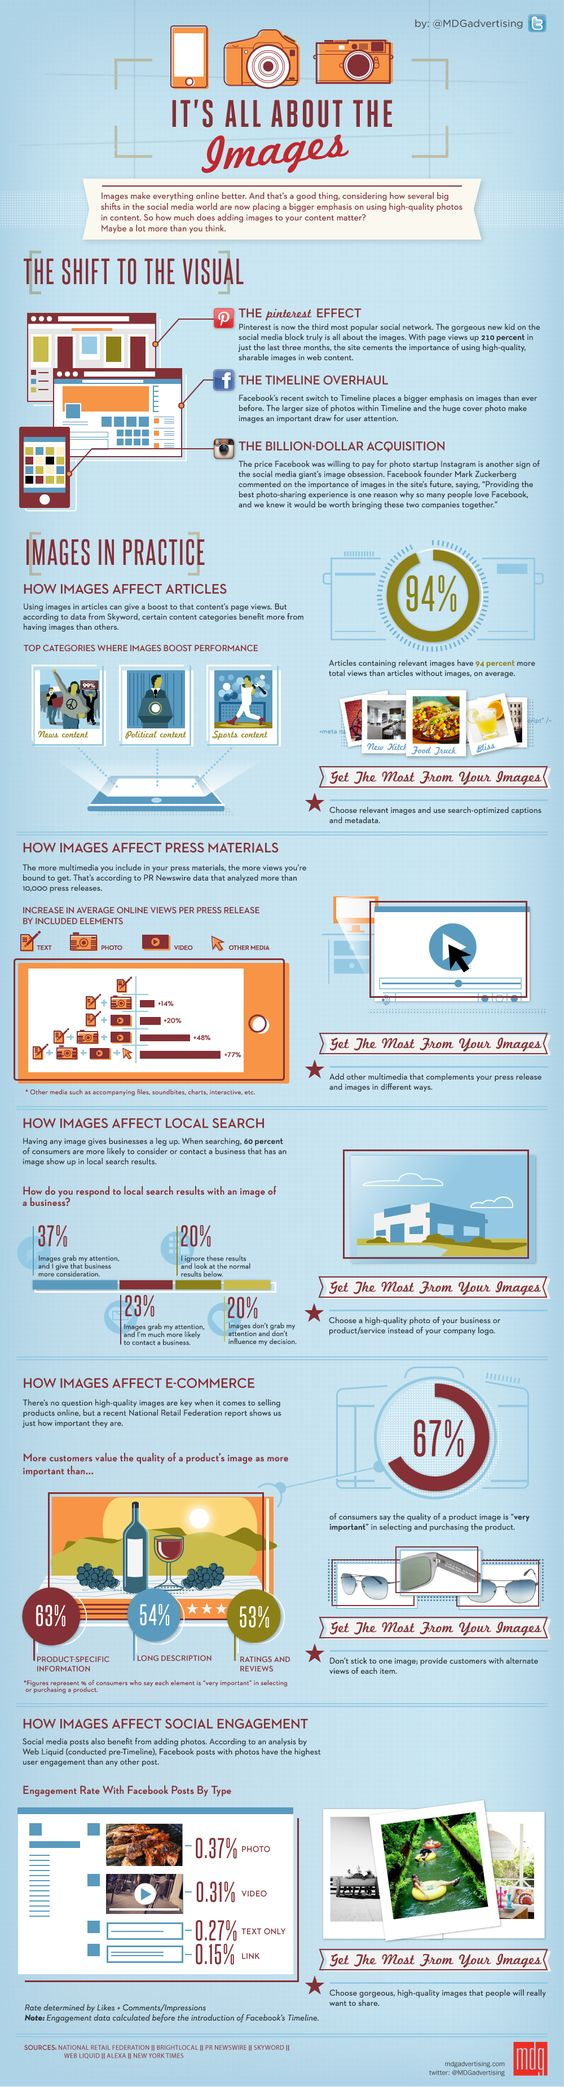 Very informational (and well-designed) infographic about the use of images in digital marketing.